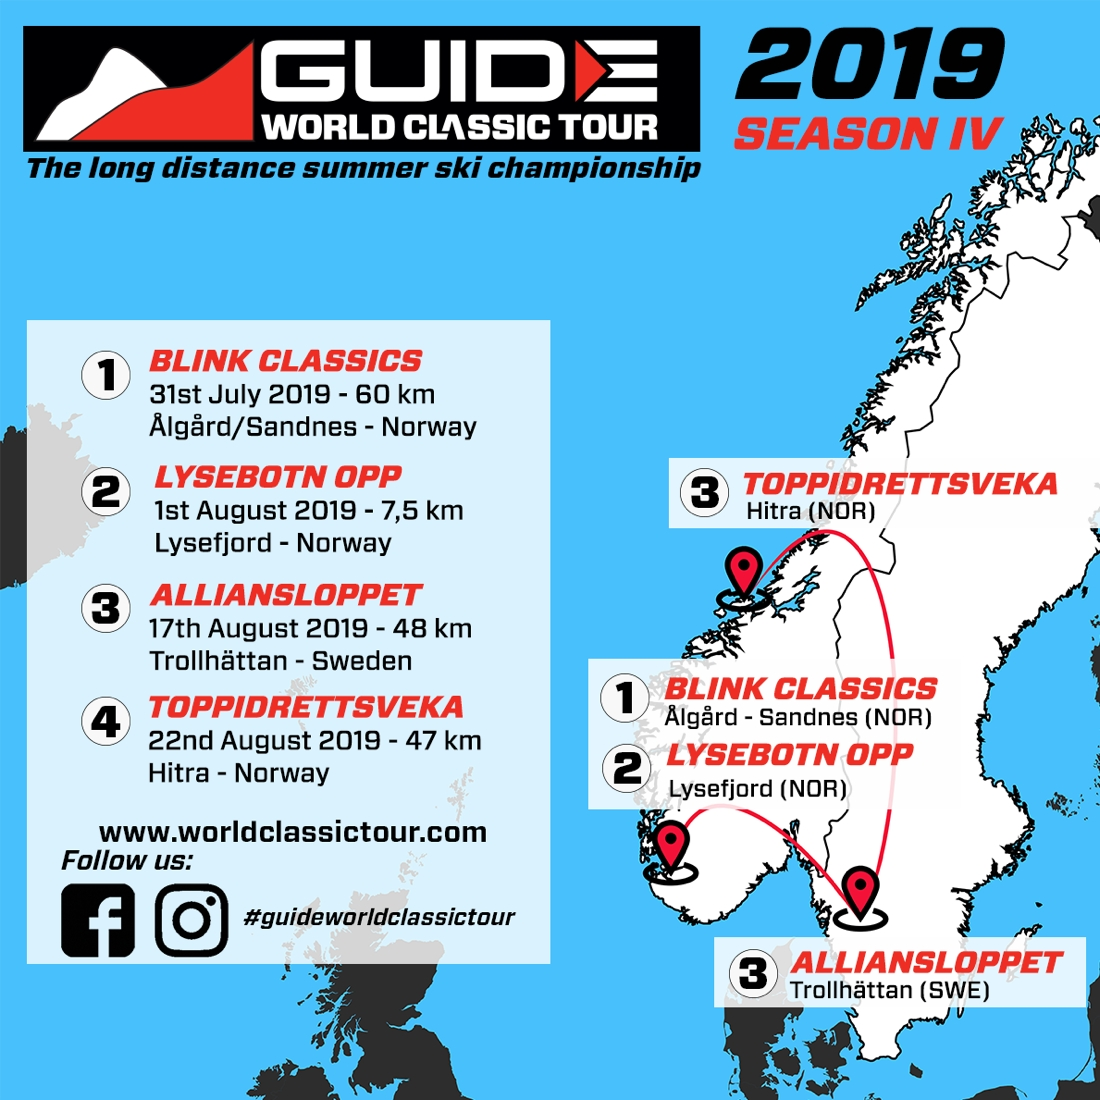 Map_worldclassictour_2019new.jpg